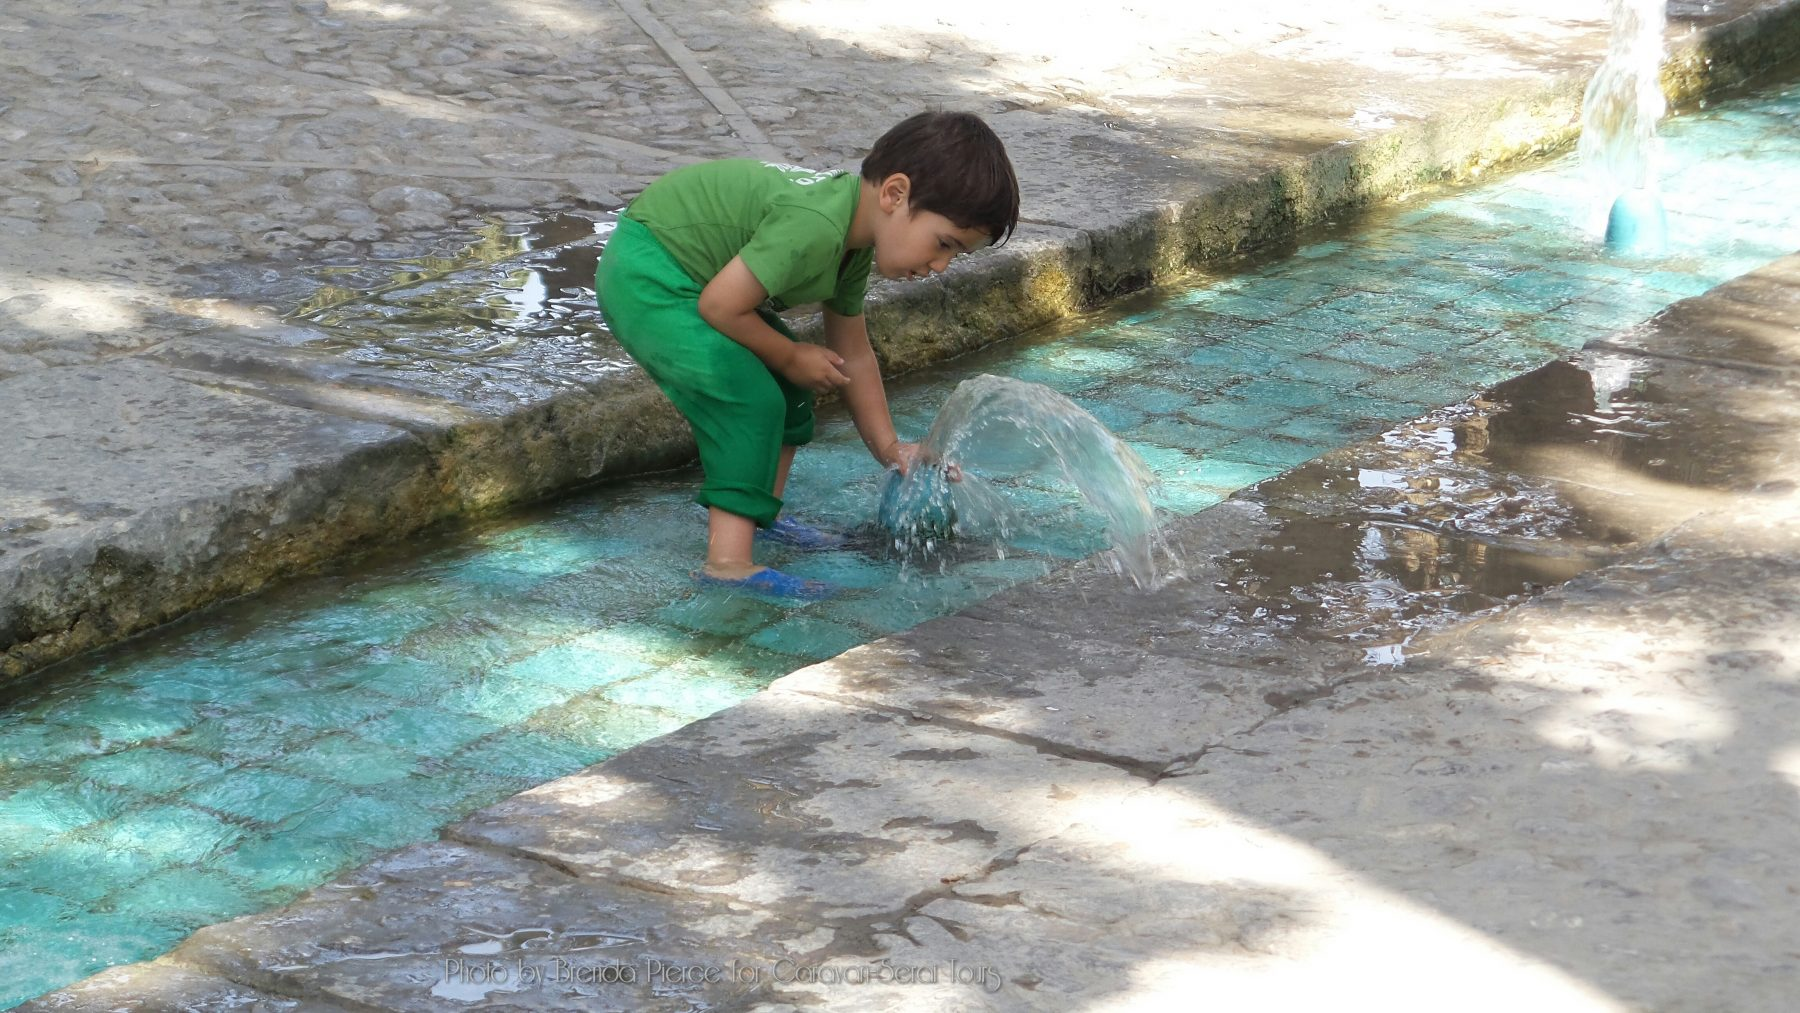 Children playing in the fountains at Fin Garden in Kashan